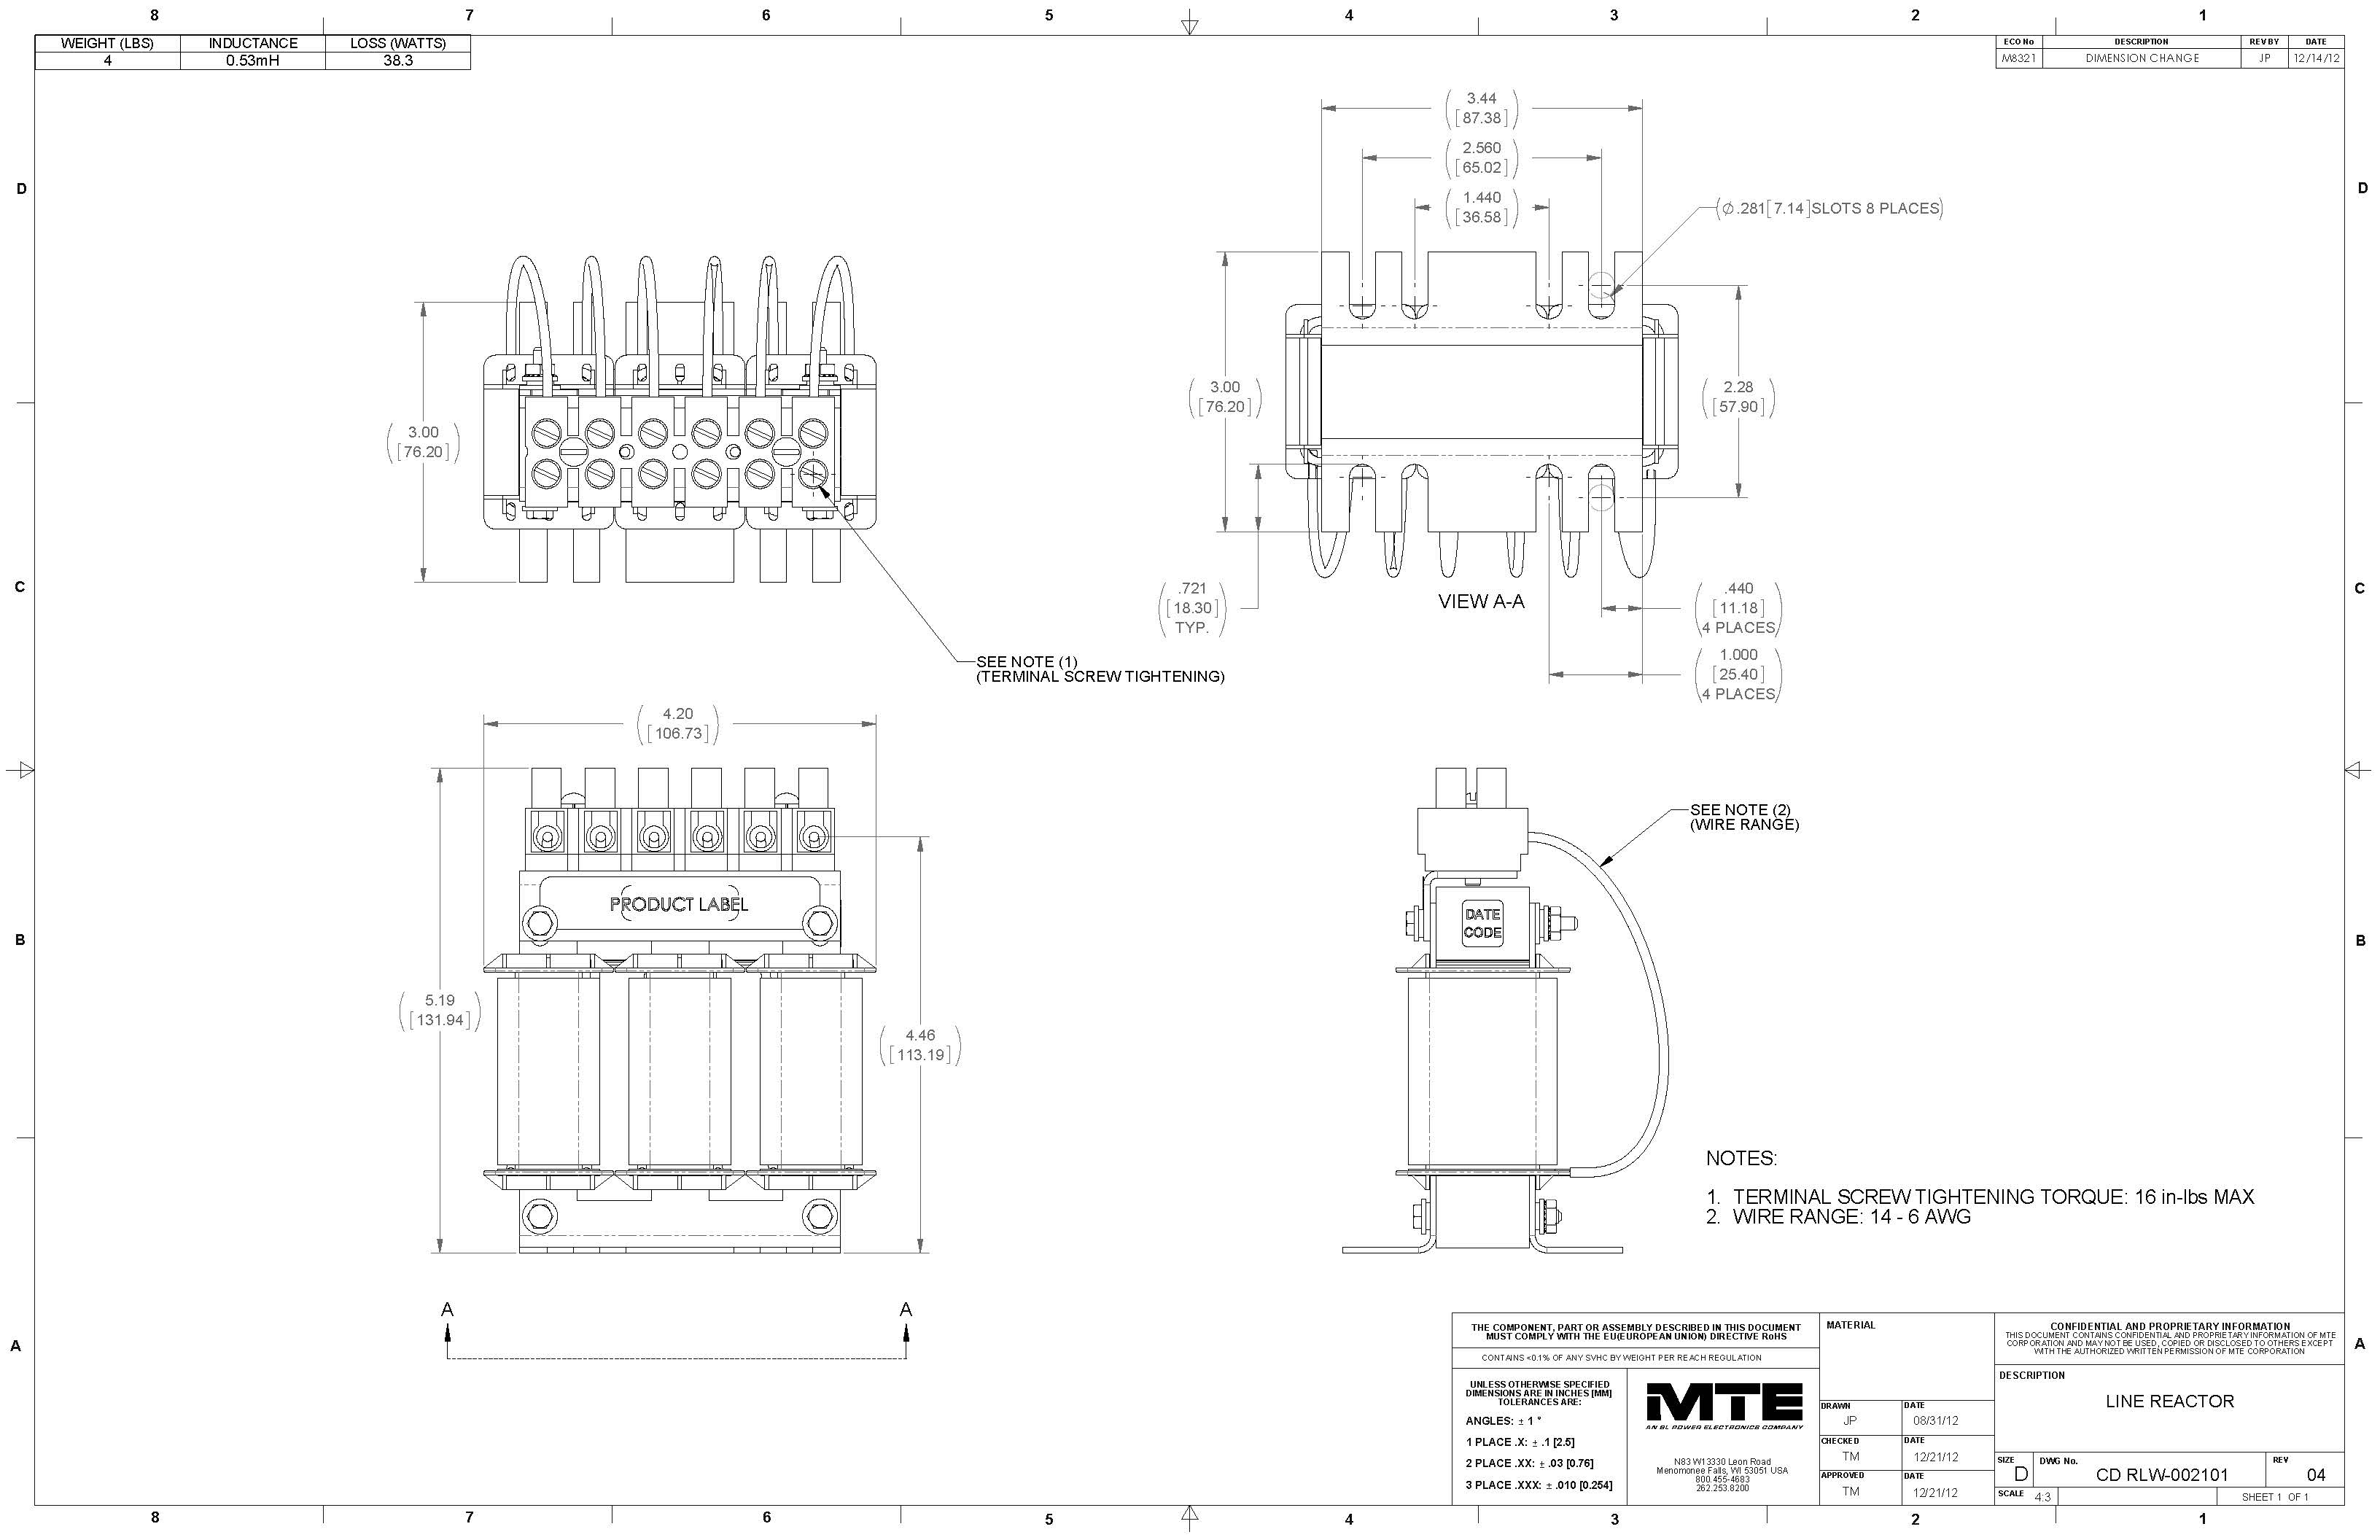 Image of an MTE Reactor RLW-002101